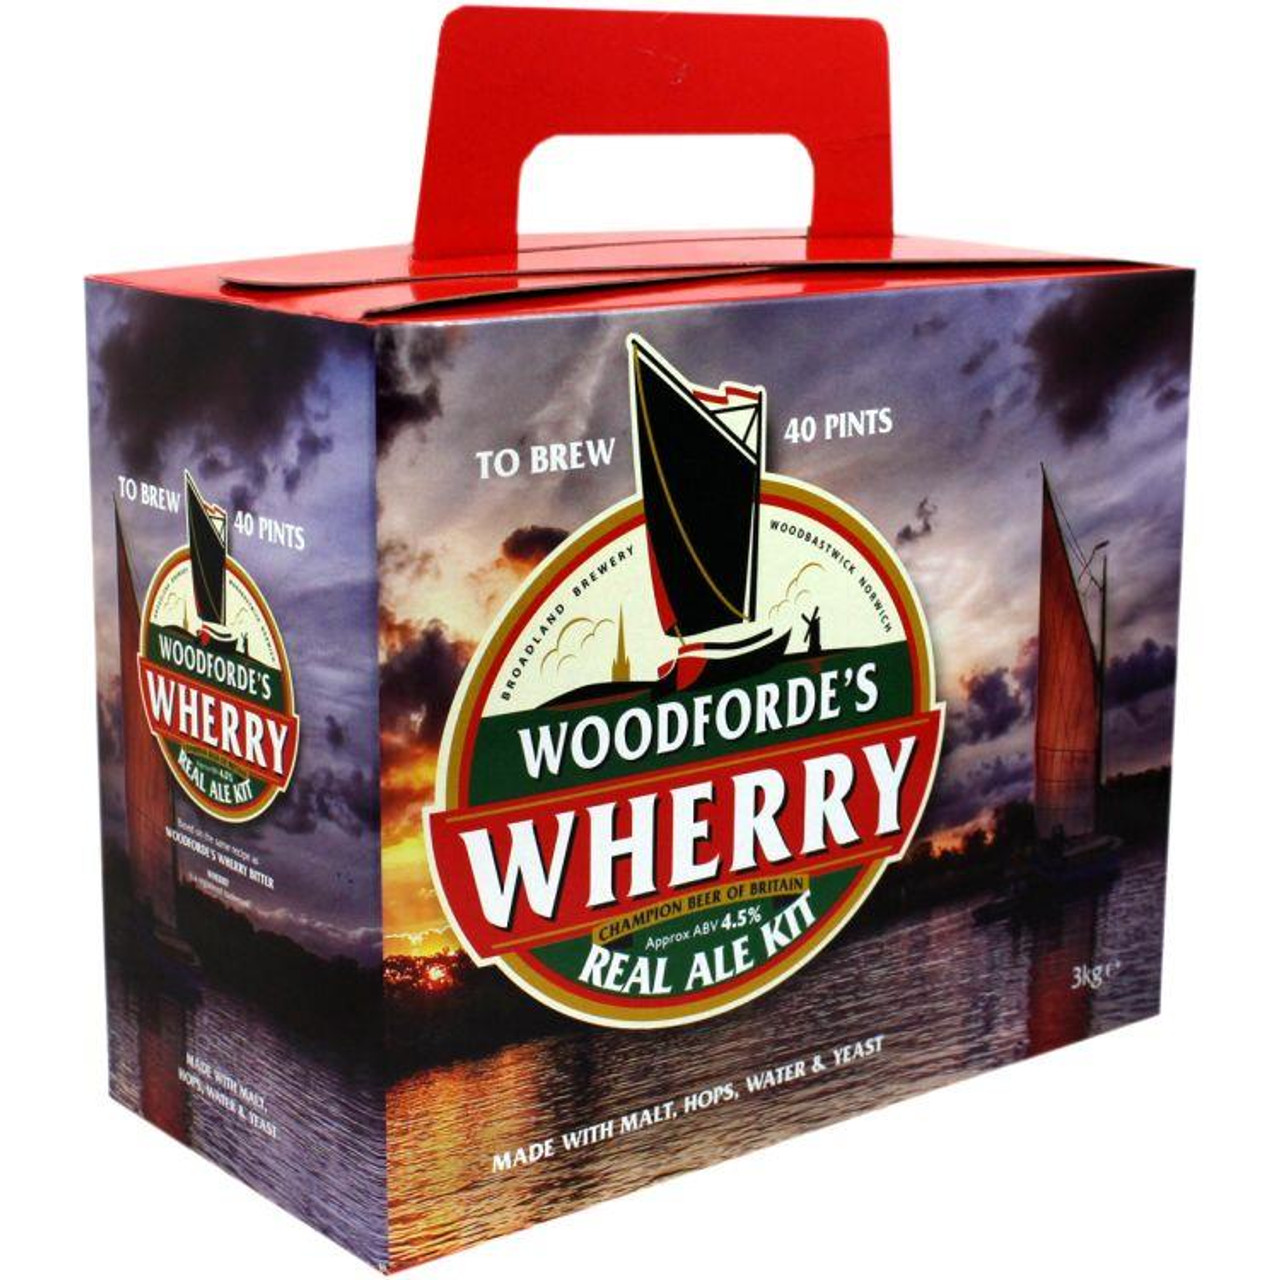 Youngs Woodfordes Wherry Real Ale 40 Pint Kit